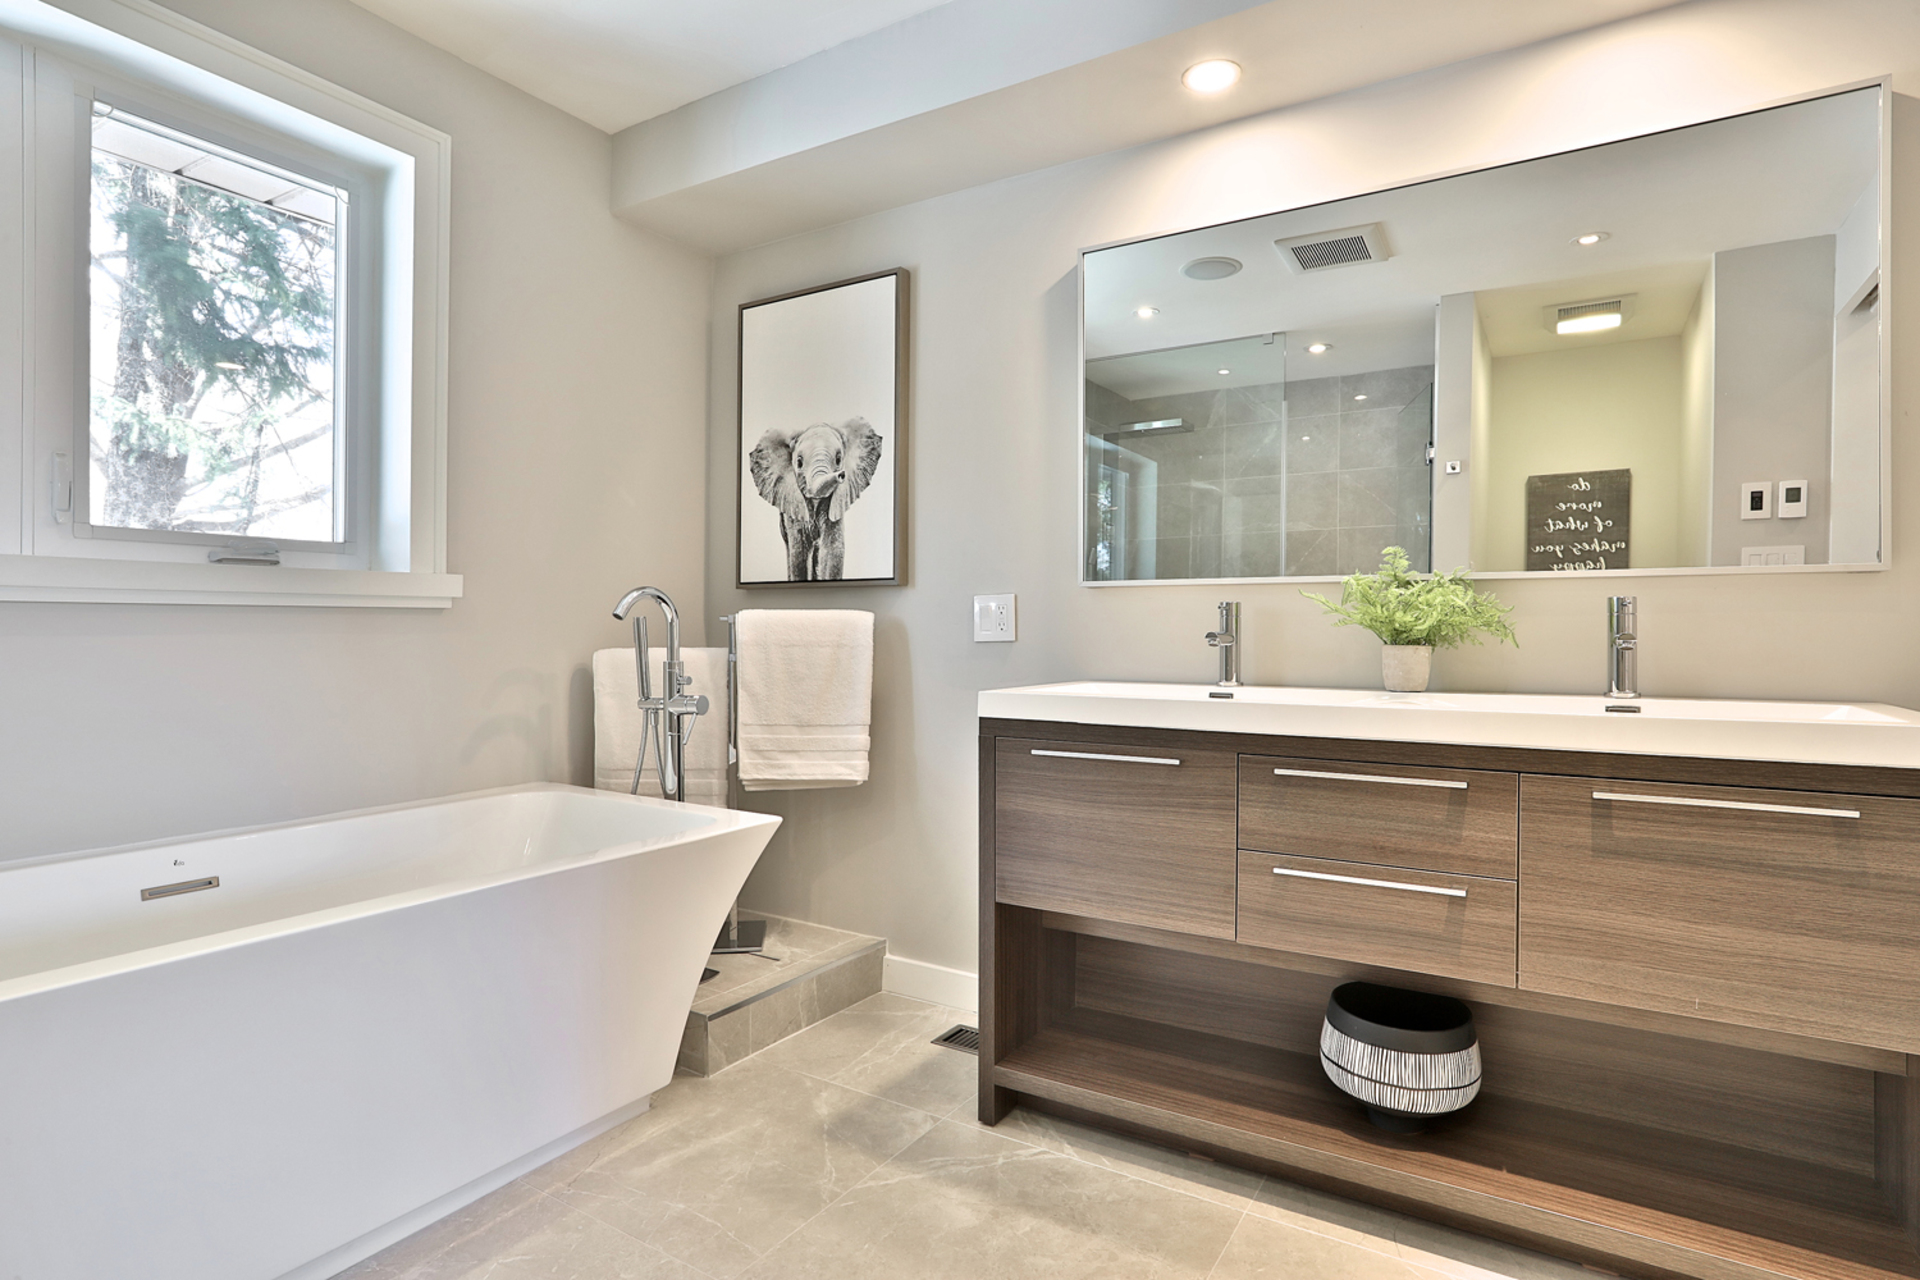 5 Piece Ensuite Bathroom at 50 Hopperton Drive, St. Andrew-Windfields, Toronto